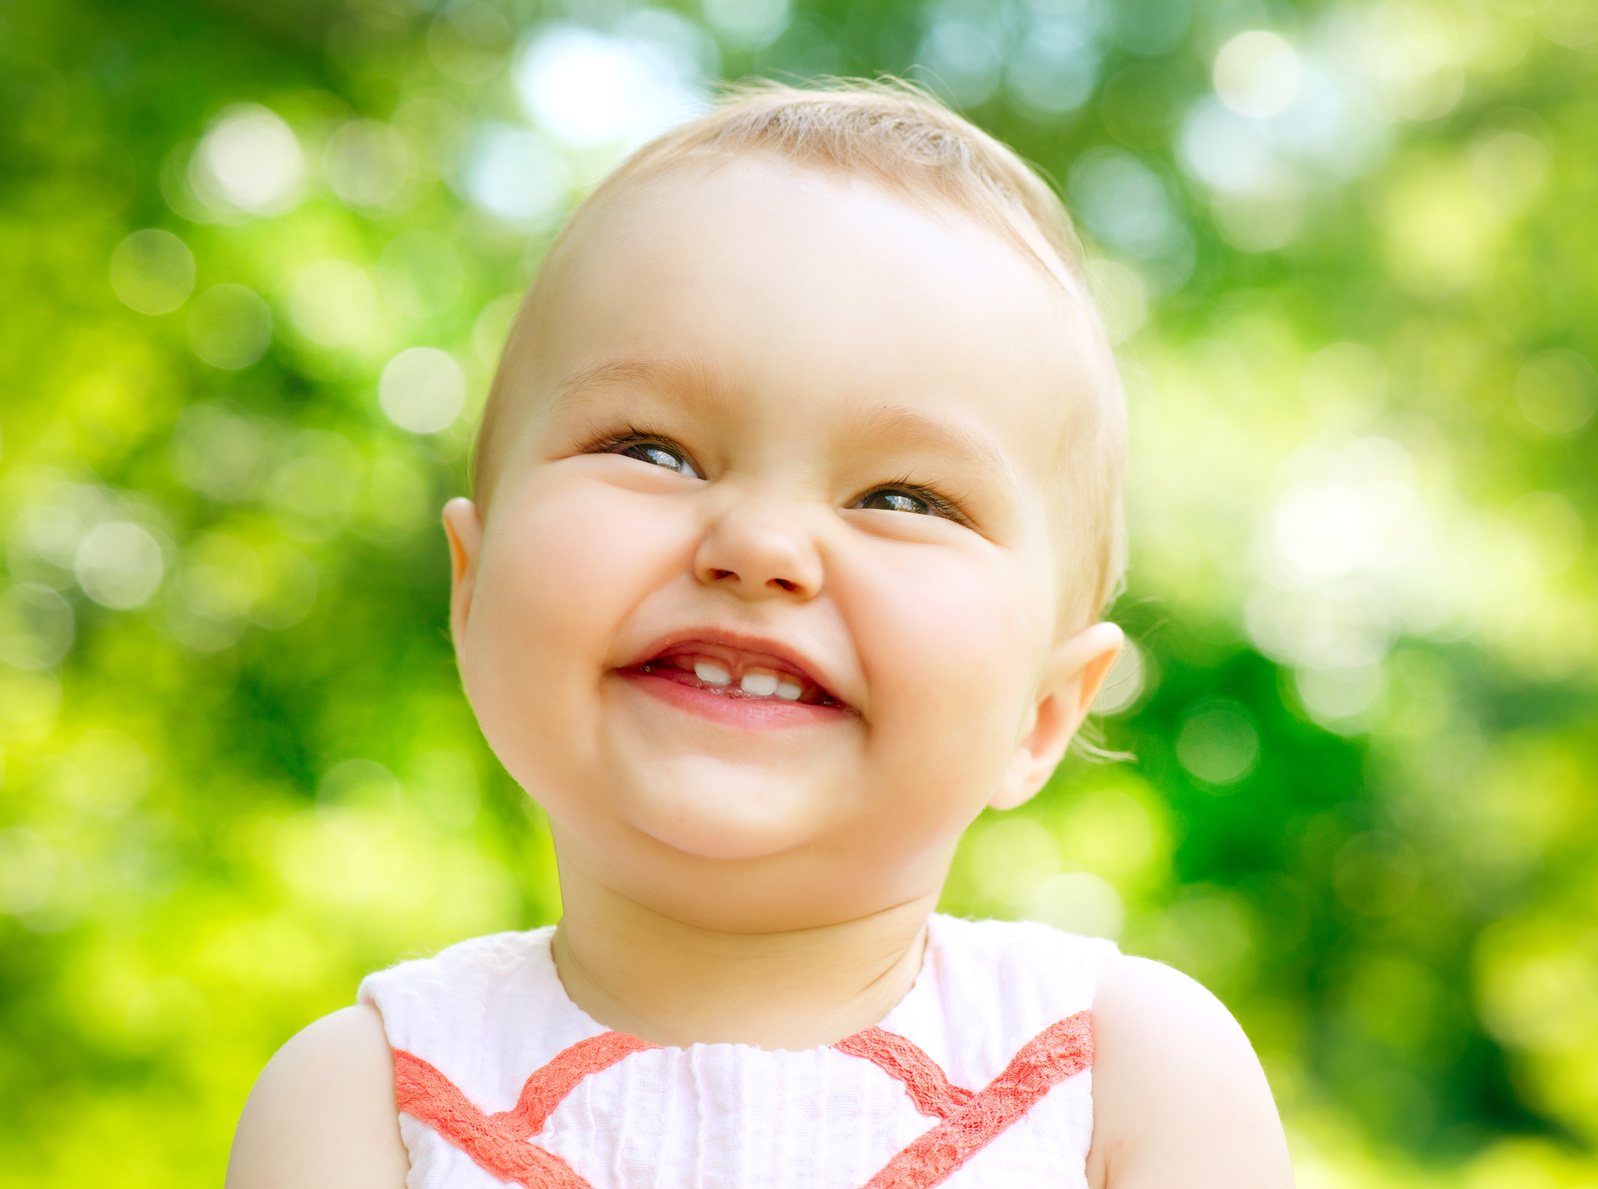 What does dentistry have to do with a healthy pregnancy?